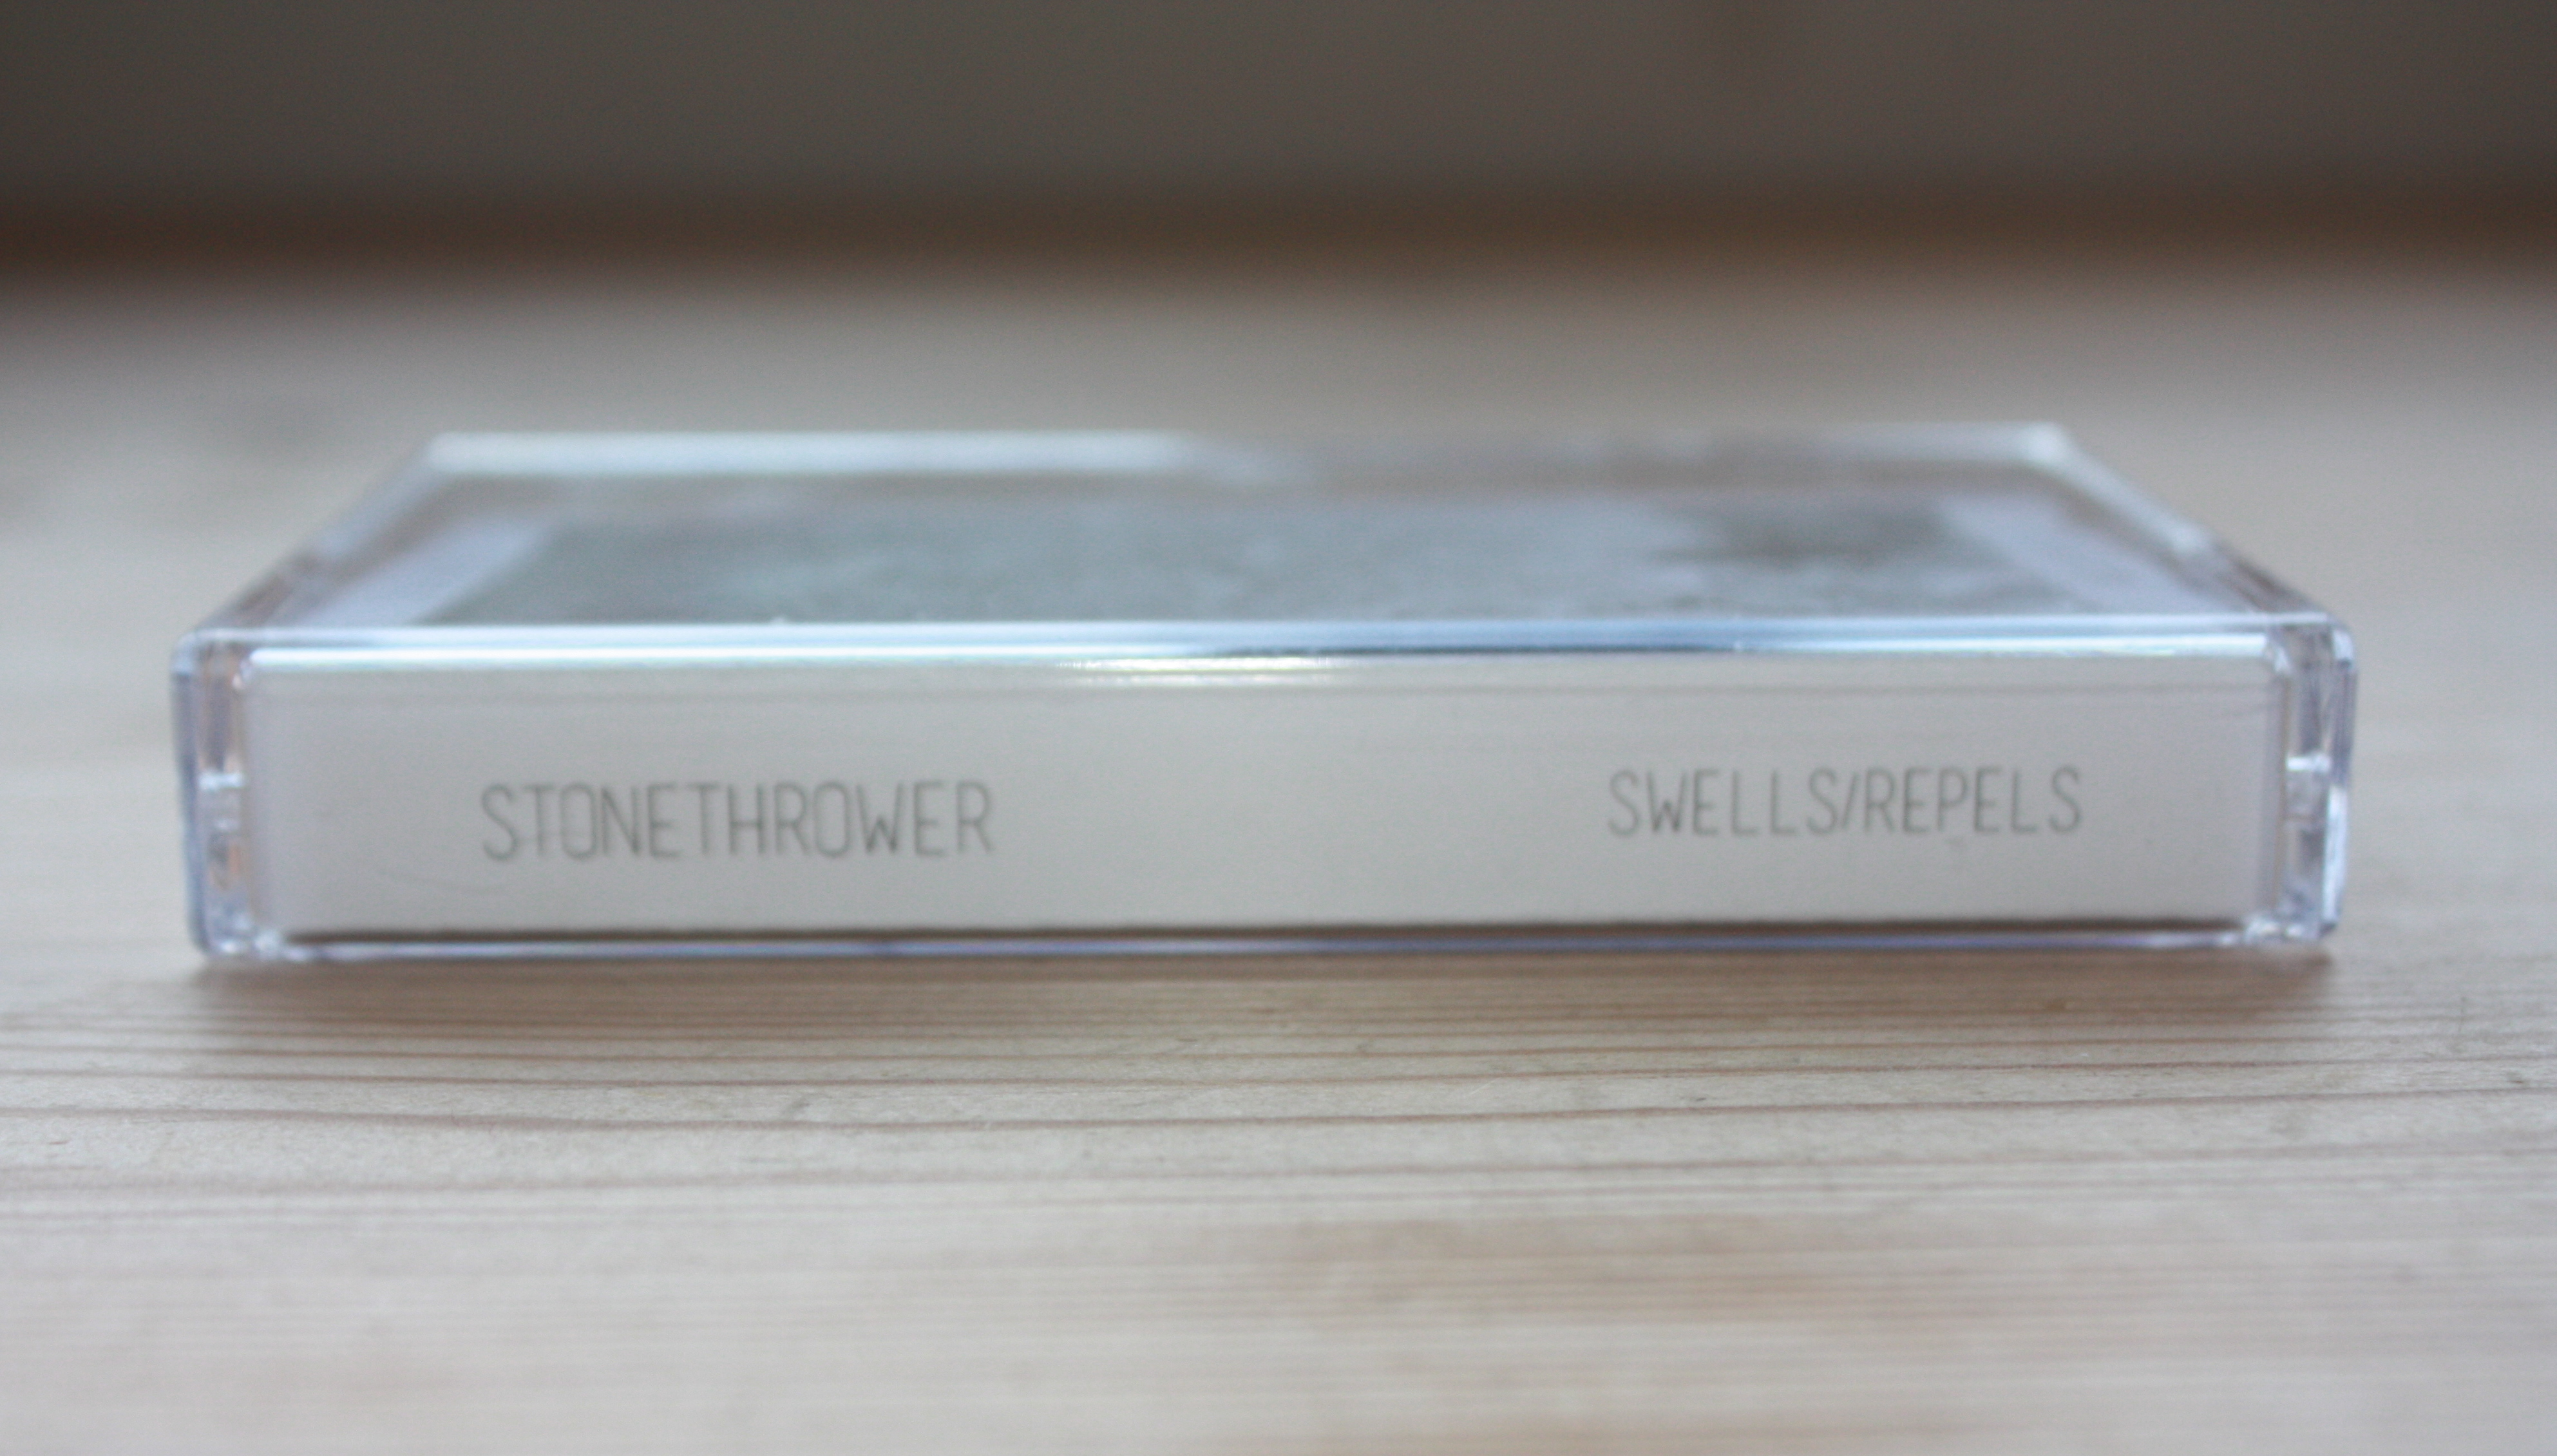 Stonethower - Swells/Repels